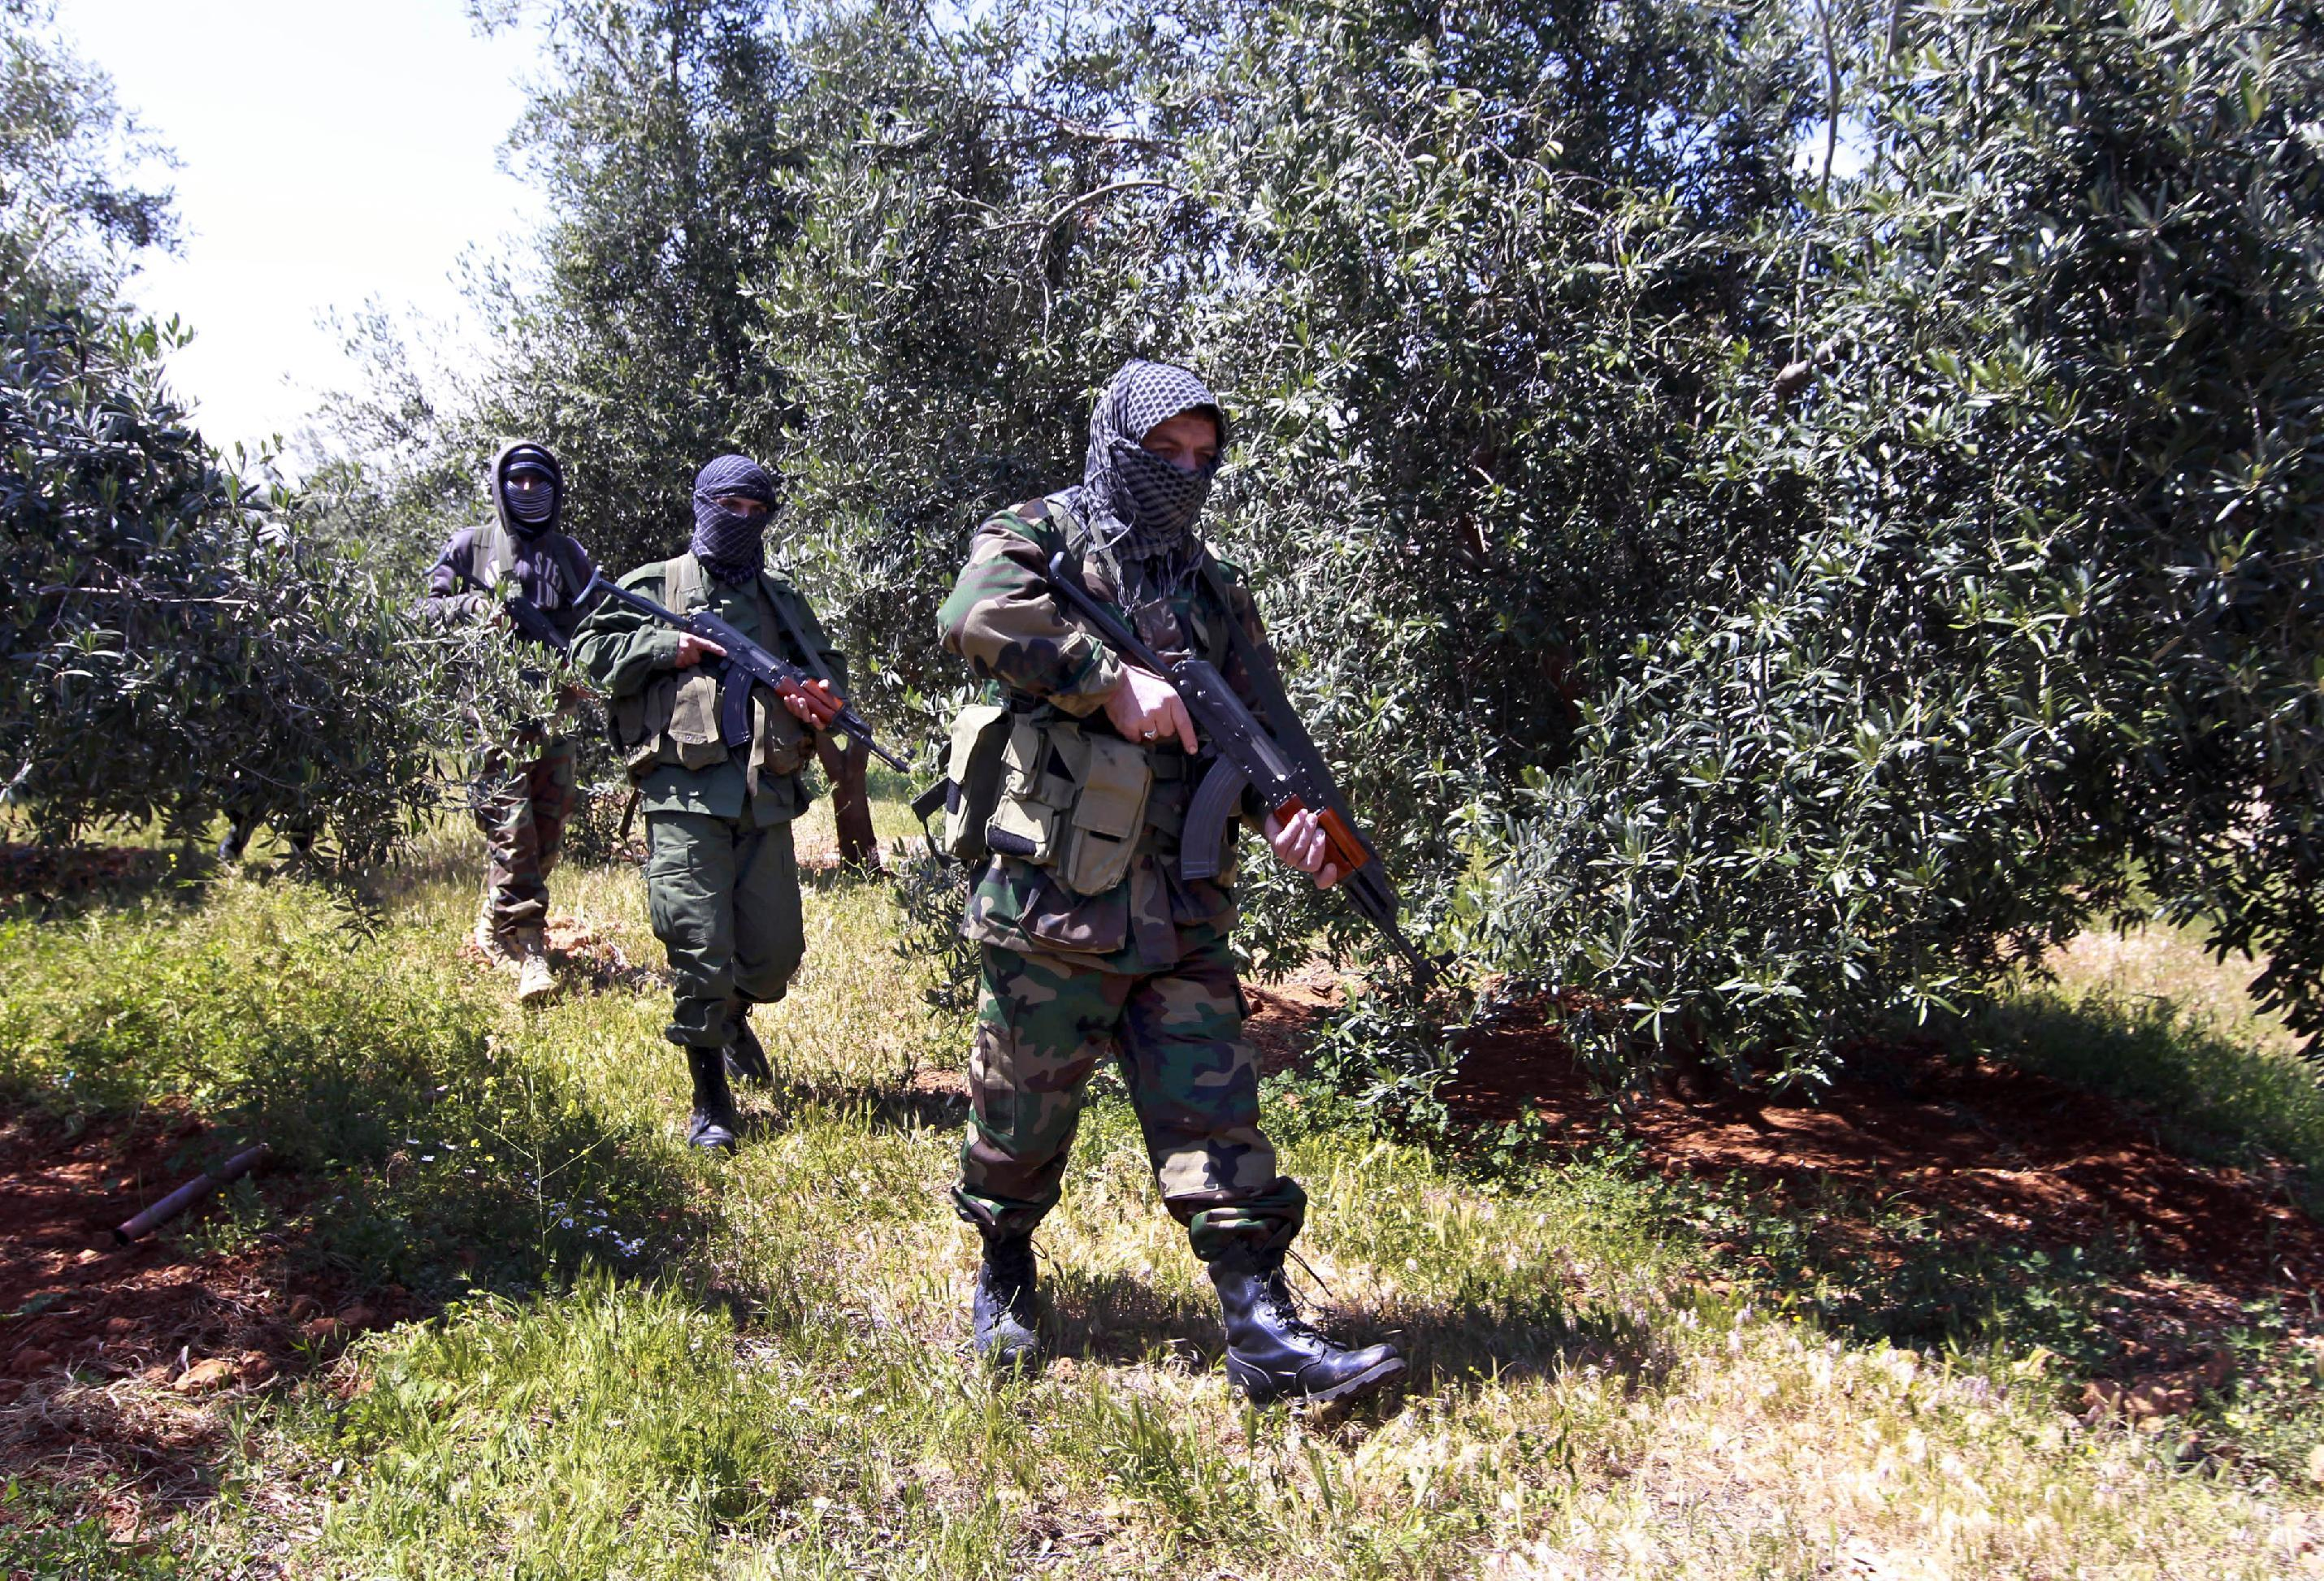 In this Friday, April 12, 2013 photo, Hezbollah fighters walk through a field at the Lebanon-Syria border, near the northeastern Lebanese town of al-Qasr, Lebanon. The Shiite group has sent hundreds of its fighters into Syria to shore up President Bashar Assad's overstretched troops, helping them gain ground around the capital, Damascus, and near the Lebanese border. But with its own casualties mounting in a civil war that activists say has killed more than 150,000 people in three years, officials say Hezbollah has turned to a variety of new tactics - including complicated commando operations - to hunt down rebels and opposition commanders. (AP Photo/Bilal Hussein)